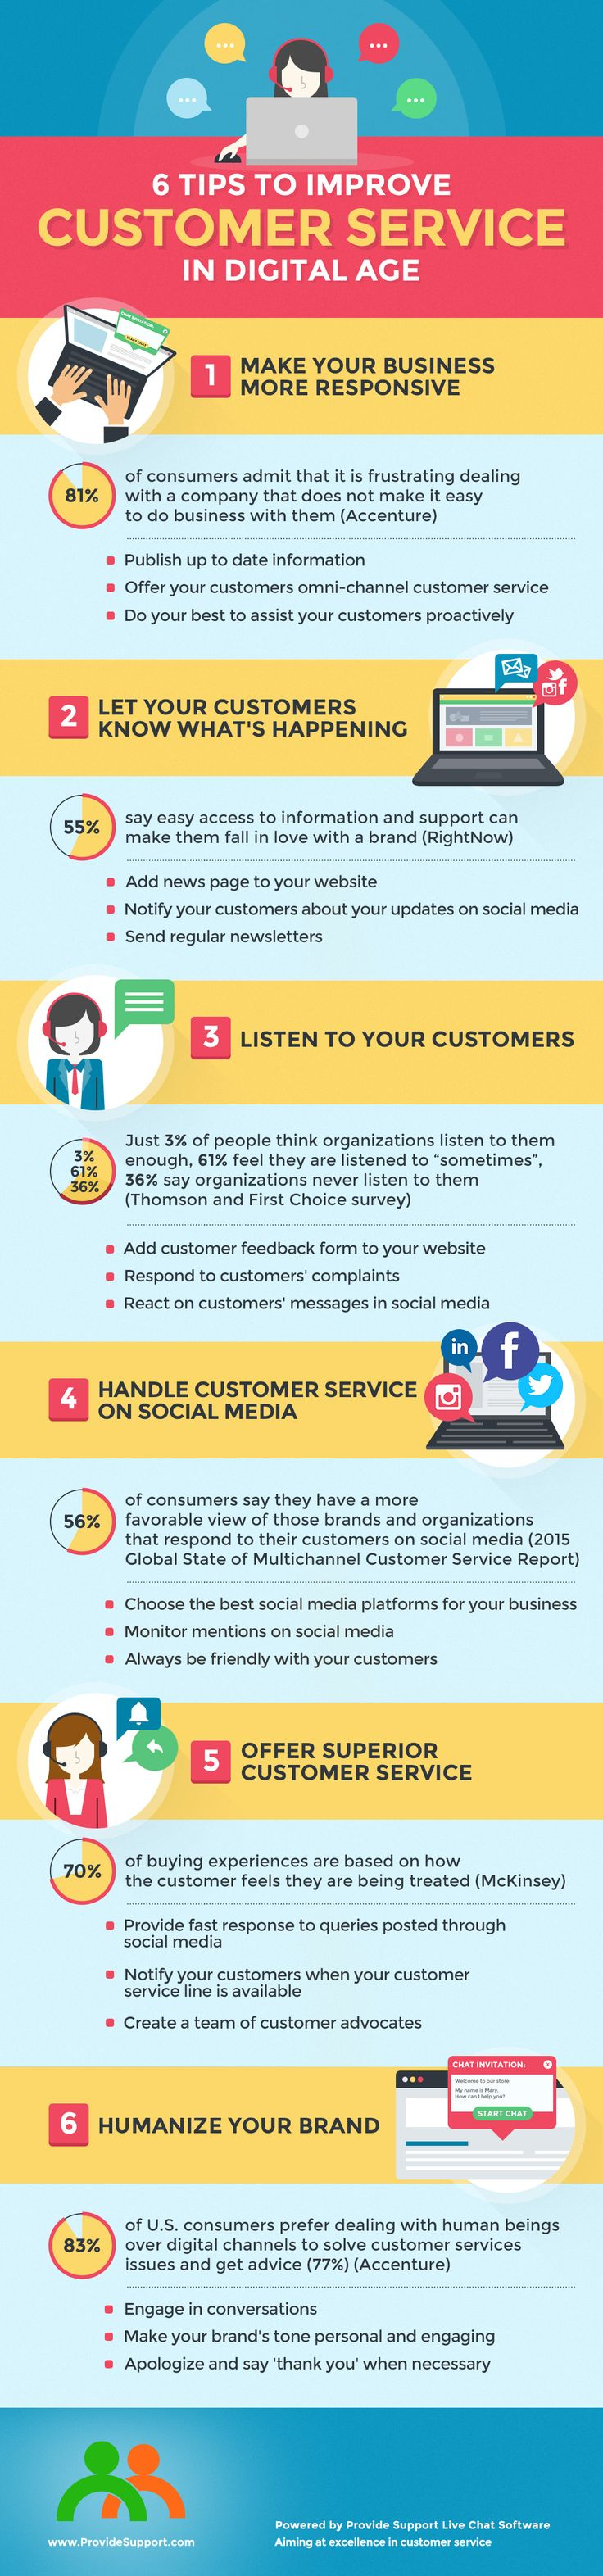 6 Tips to Improve Customer Service in Digital Age (Infographic): http://www.providesupport.com/blog/6-tips-to-improve-customer-service-in-digital-age/ #customerservice #nfographic